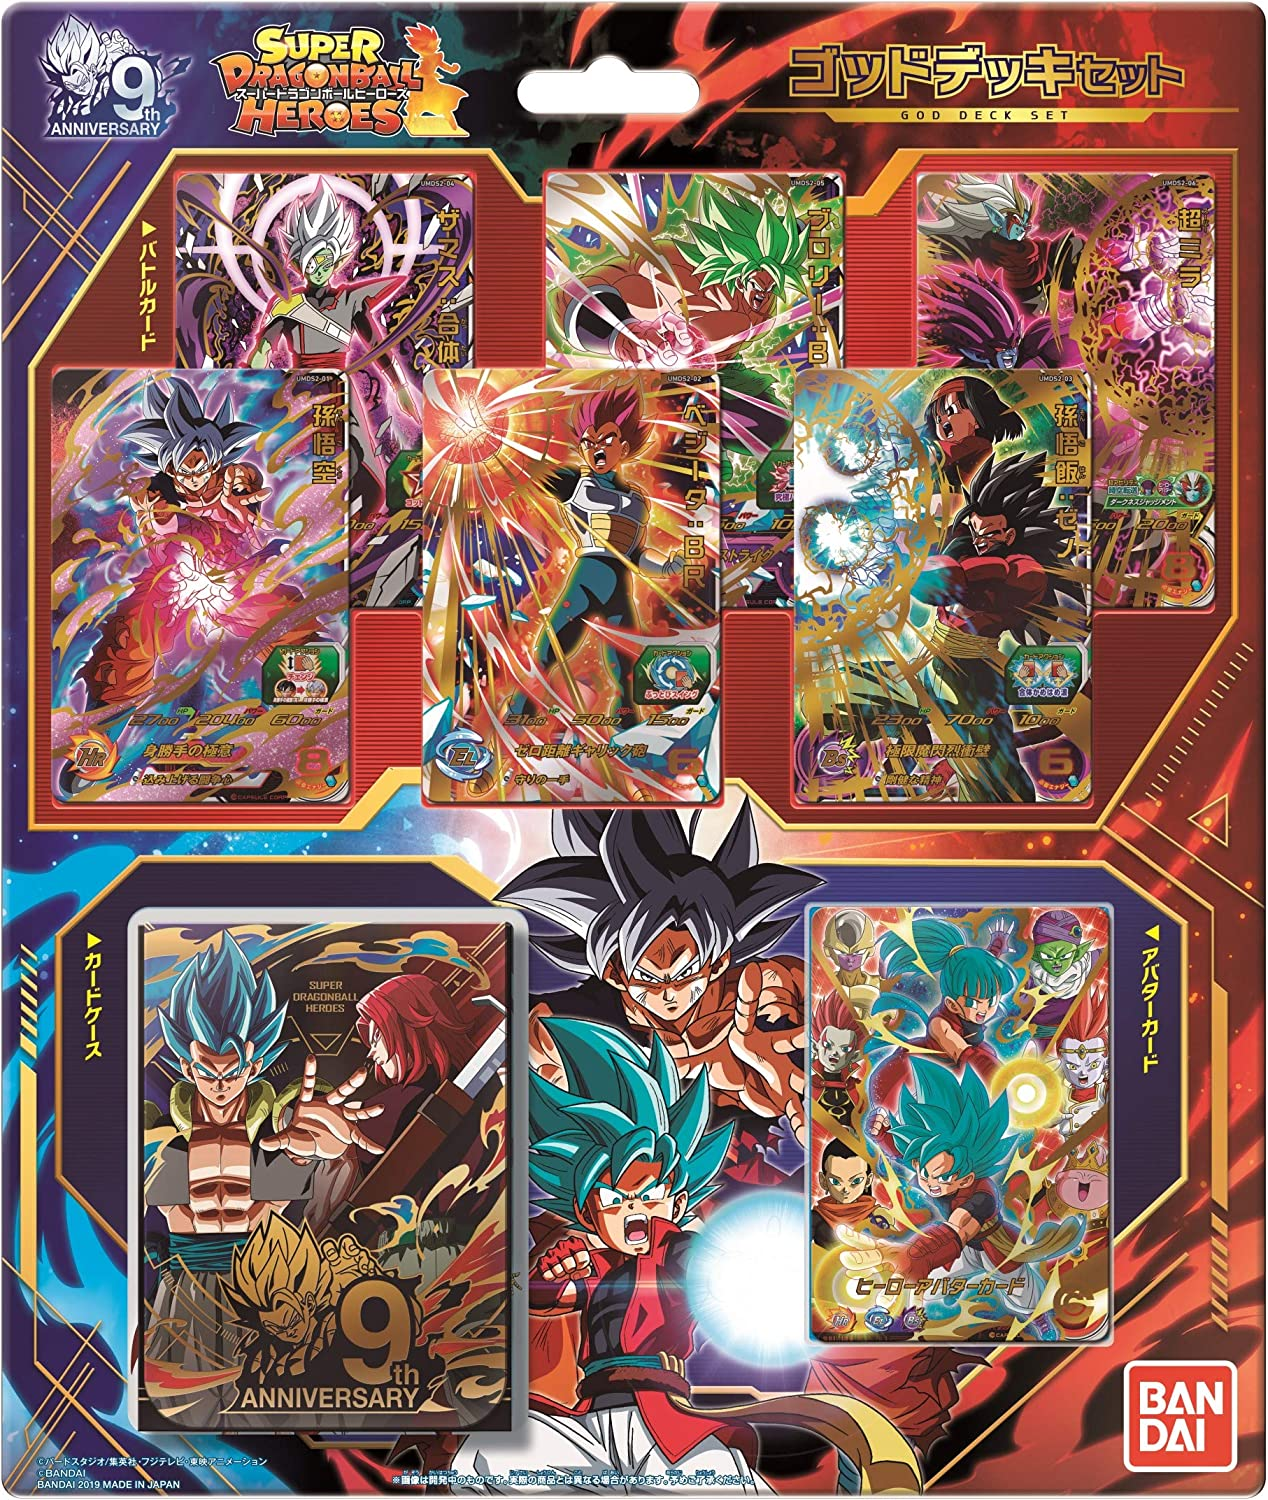 BANDAI Super Dragon Ball Heroes God Deck Set 9th Anniversary Cartas: Amazon.es: Juguetes y juegos